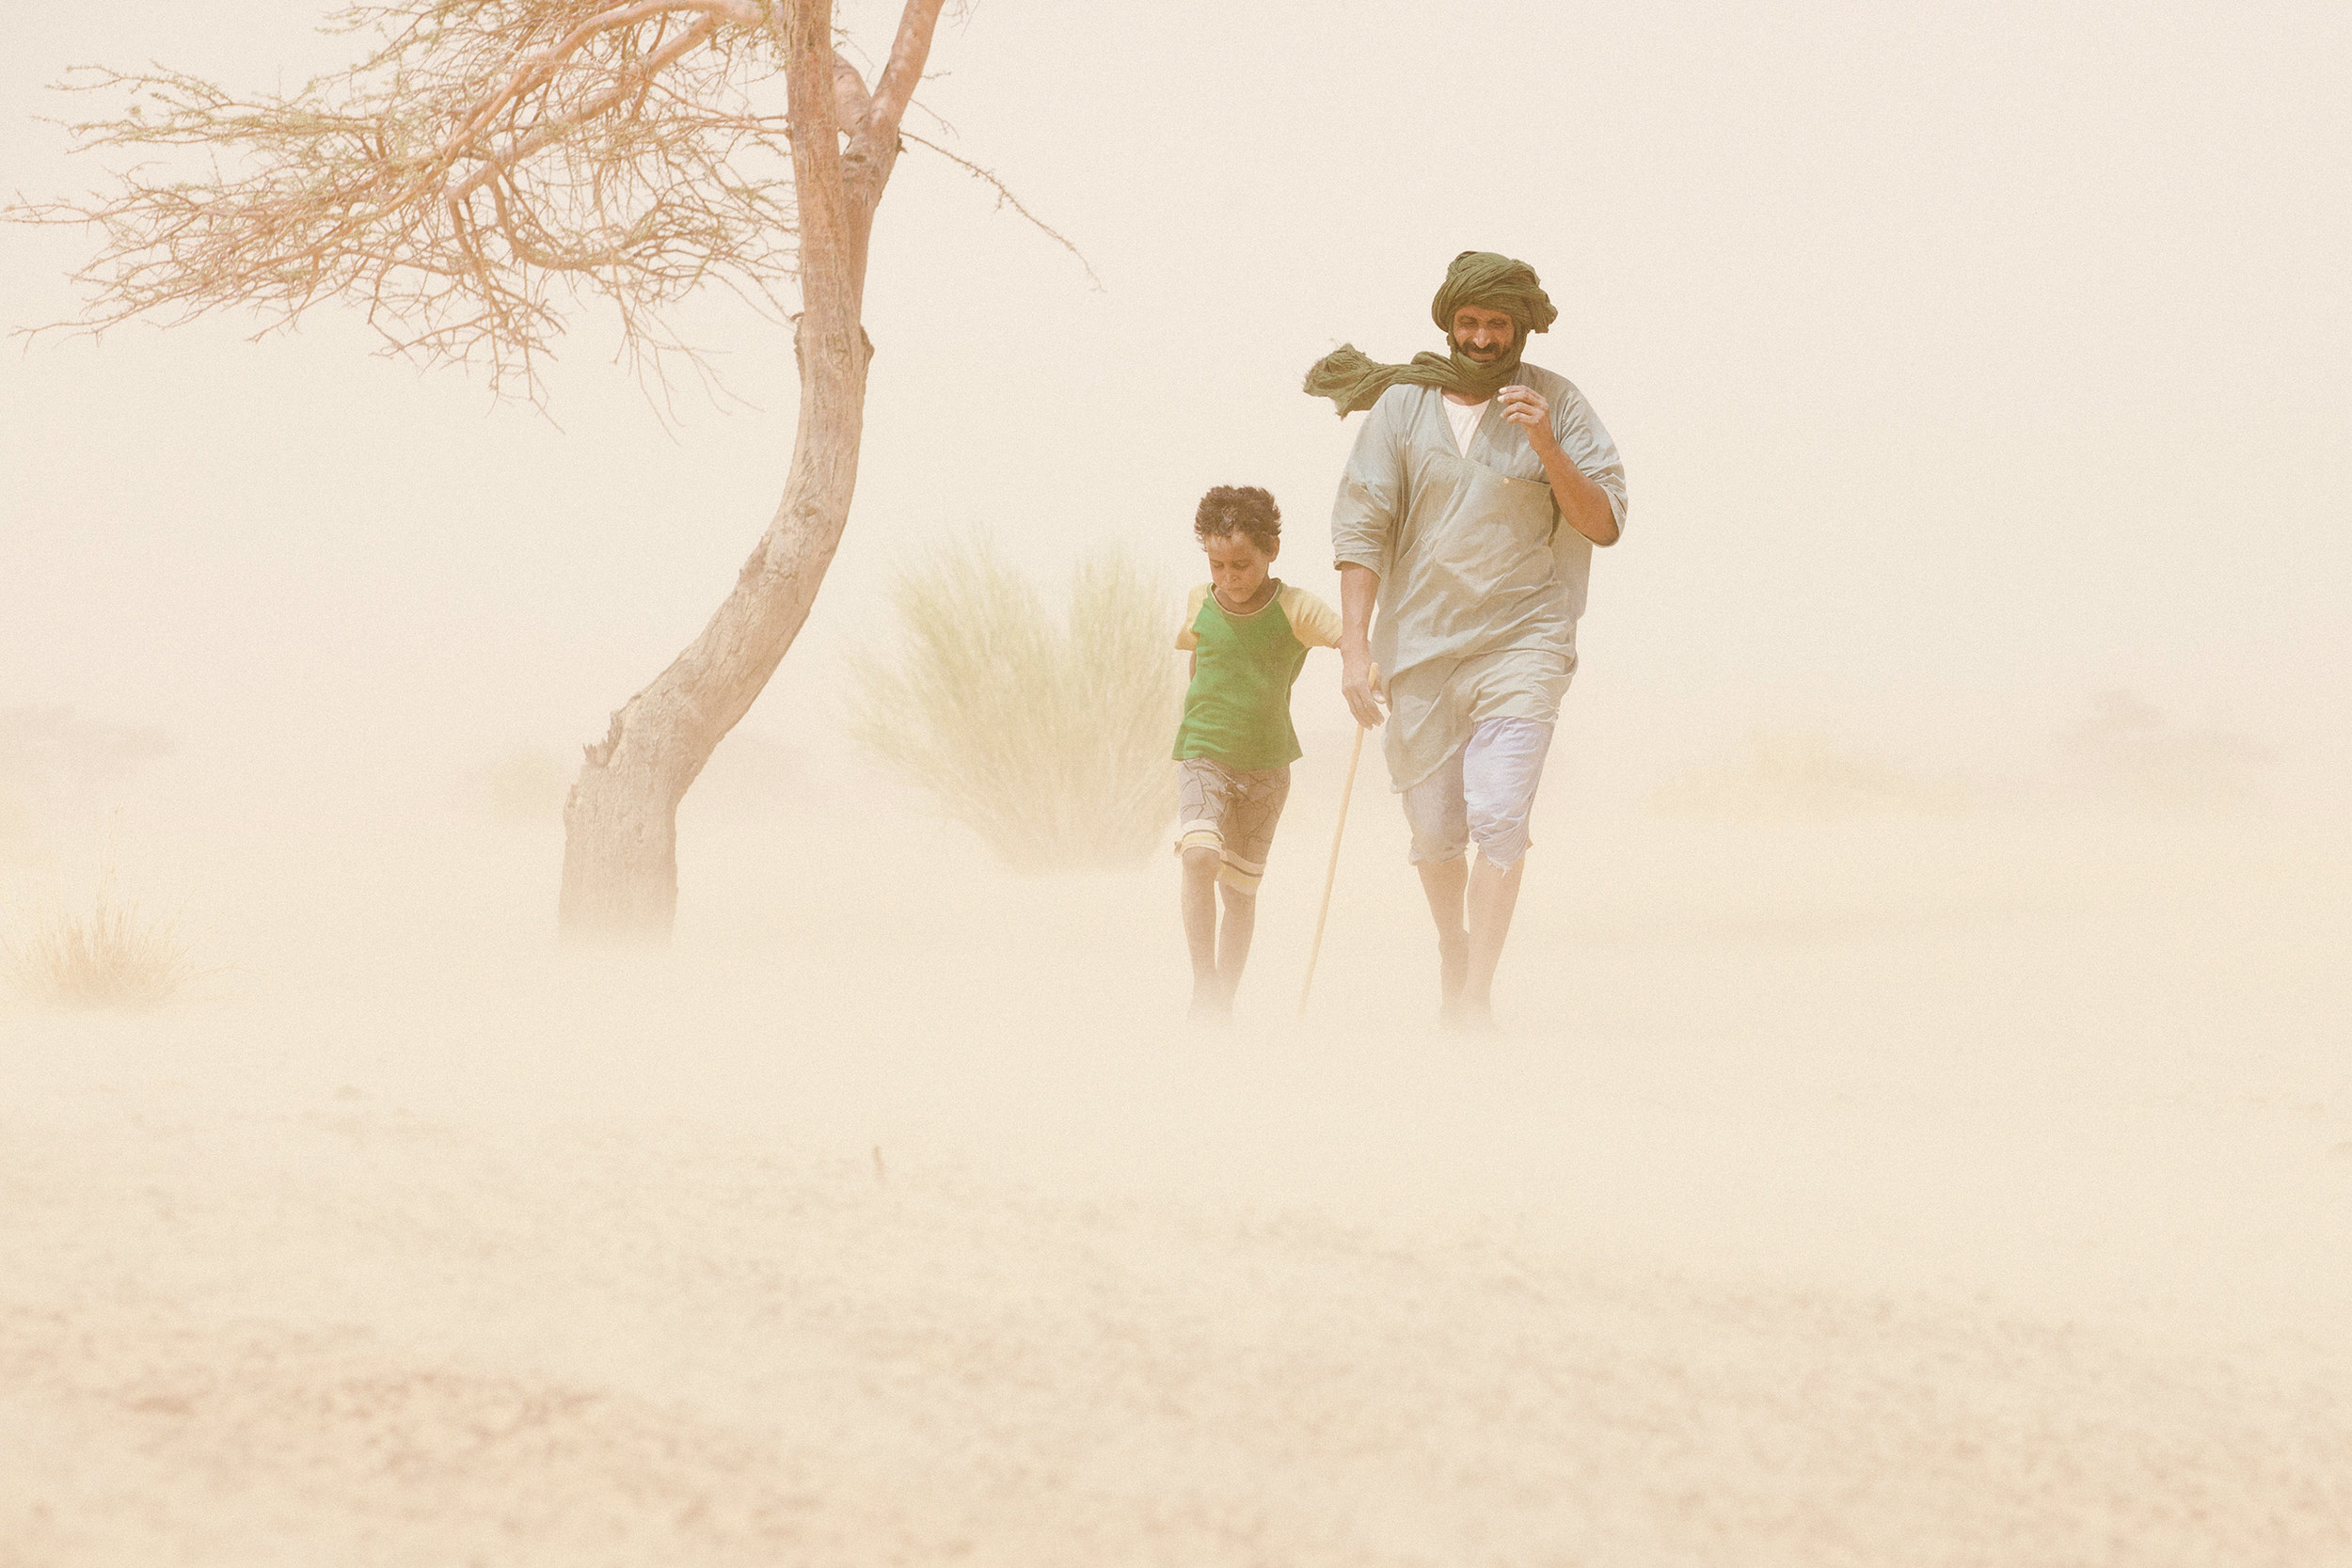 travel-photography-tips-father-son-desert